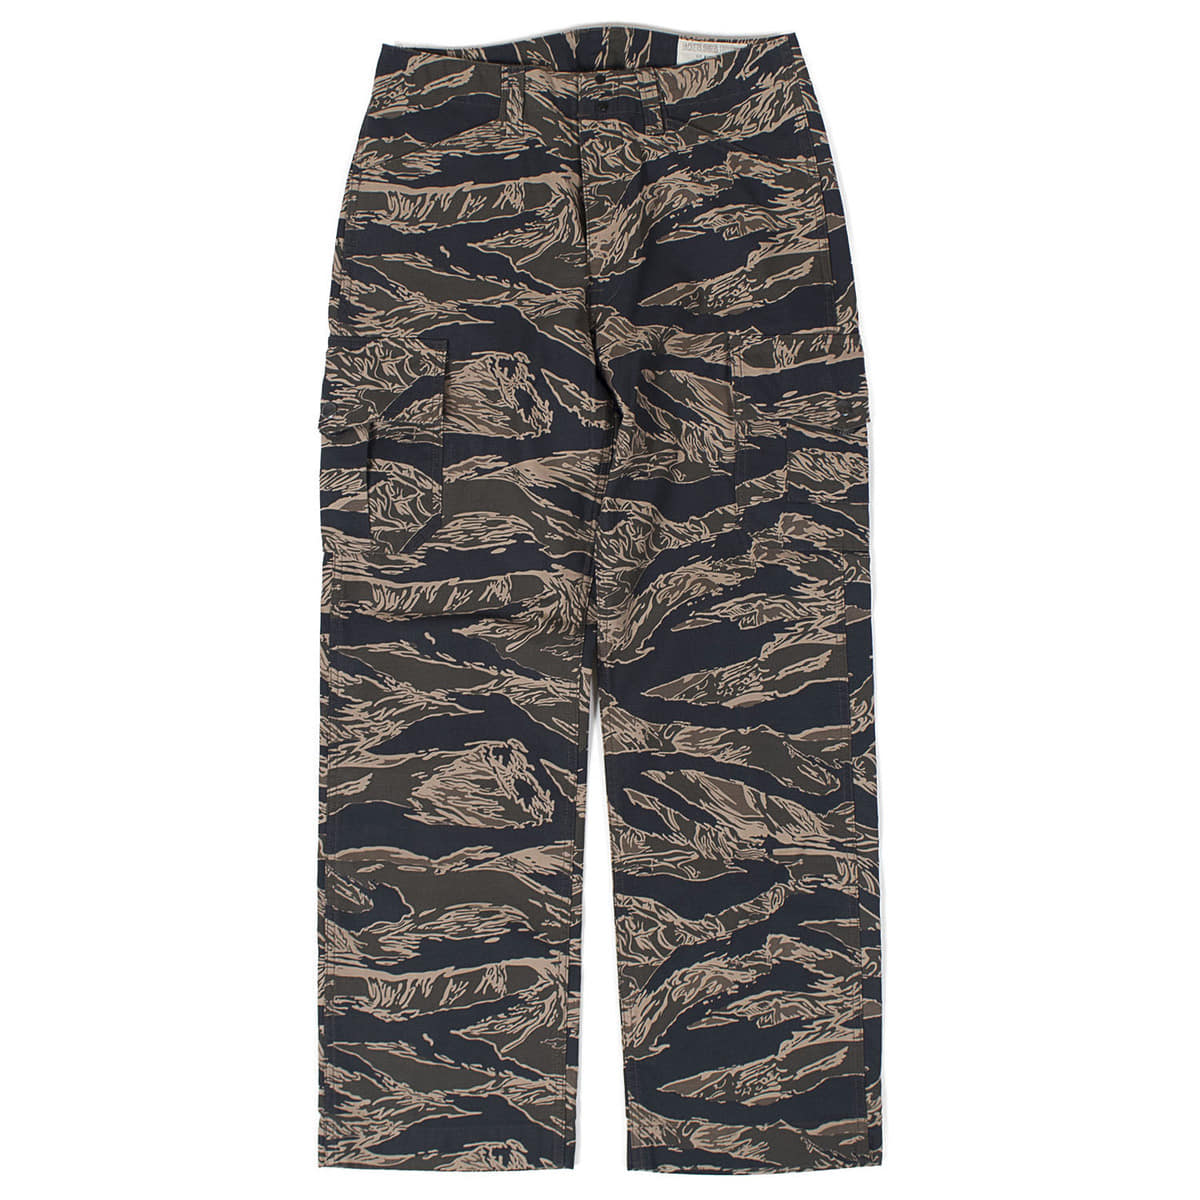 Tigerstripe Fatigue Pants (Tiger Stripe)